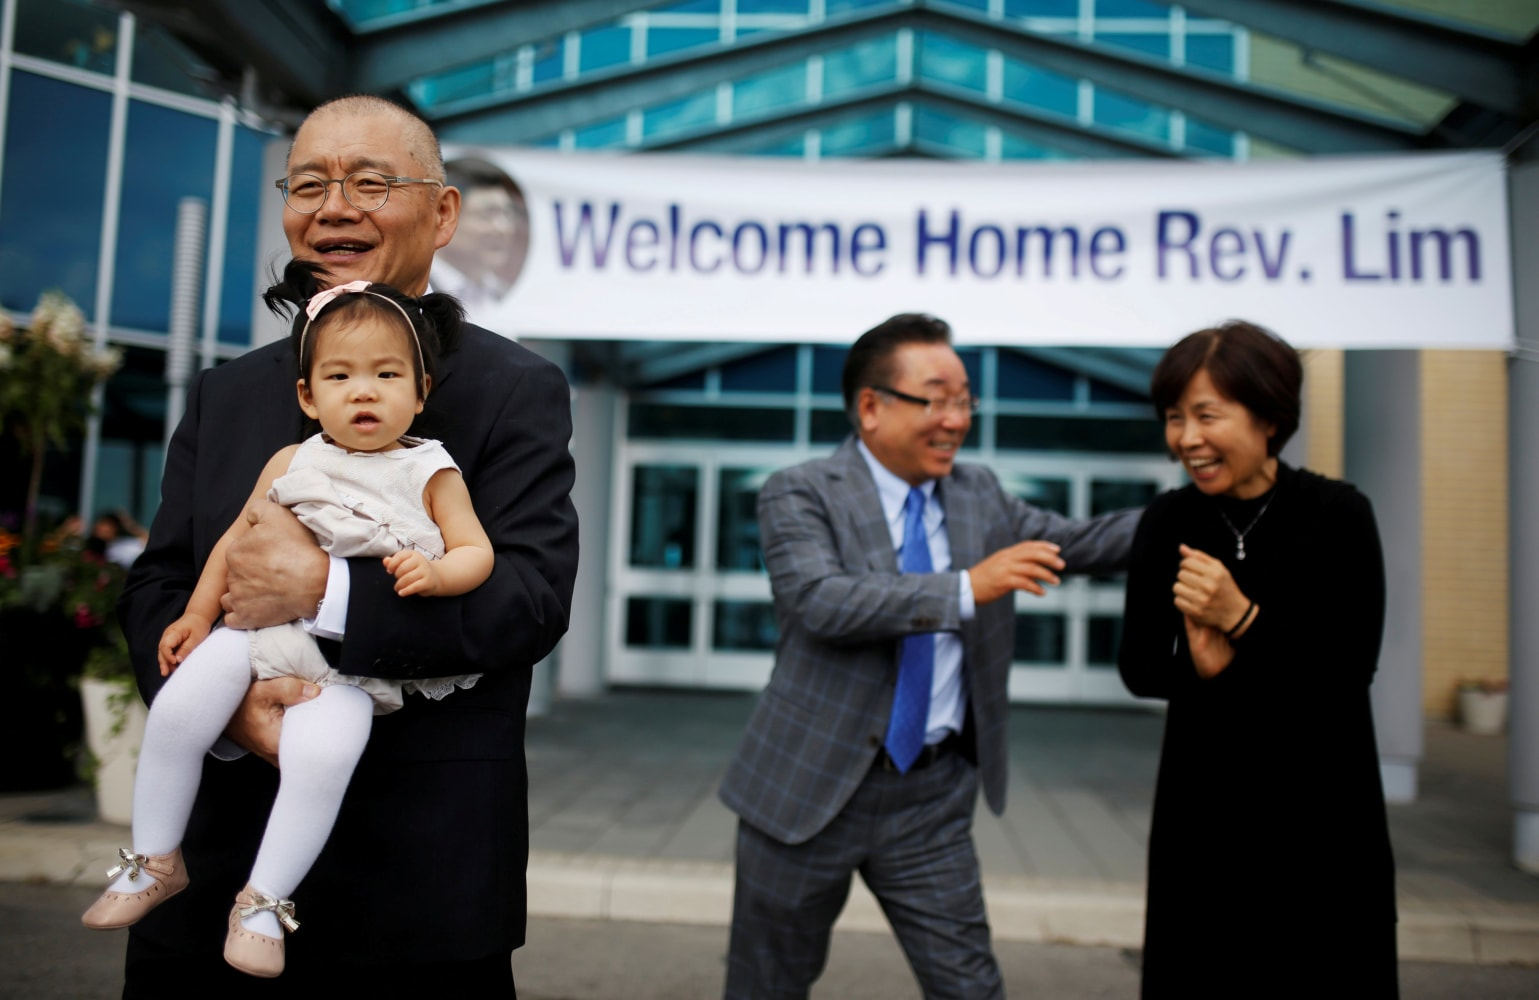 Canadian pastor returns home after N Korea ordeal